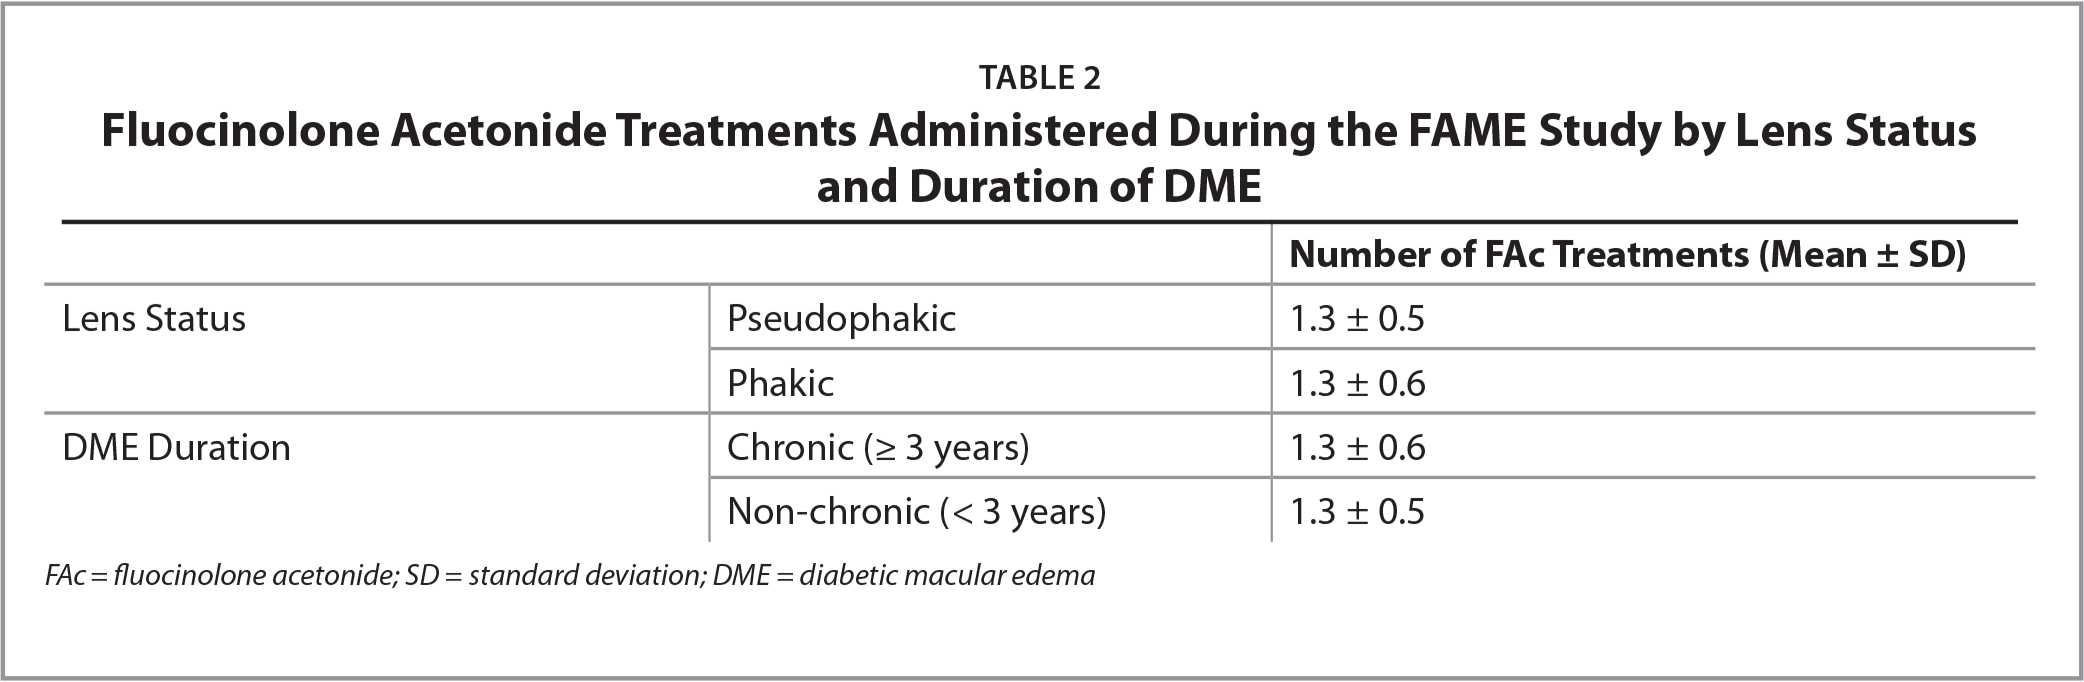 Fluocinolone Acetonide Treatments Administered During the FAME Study by Lens Status and Duration of DME